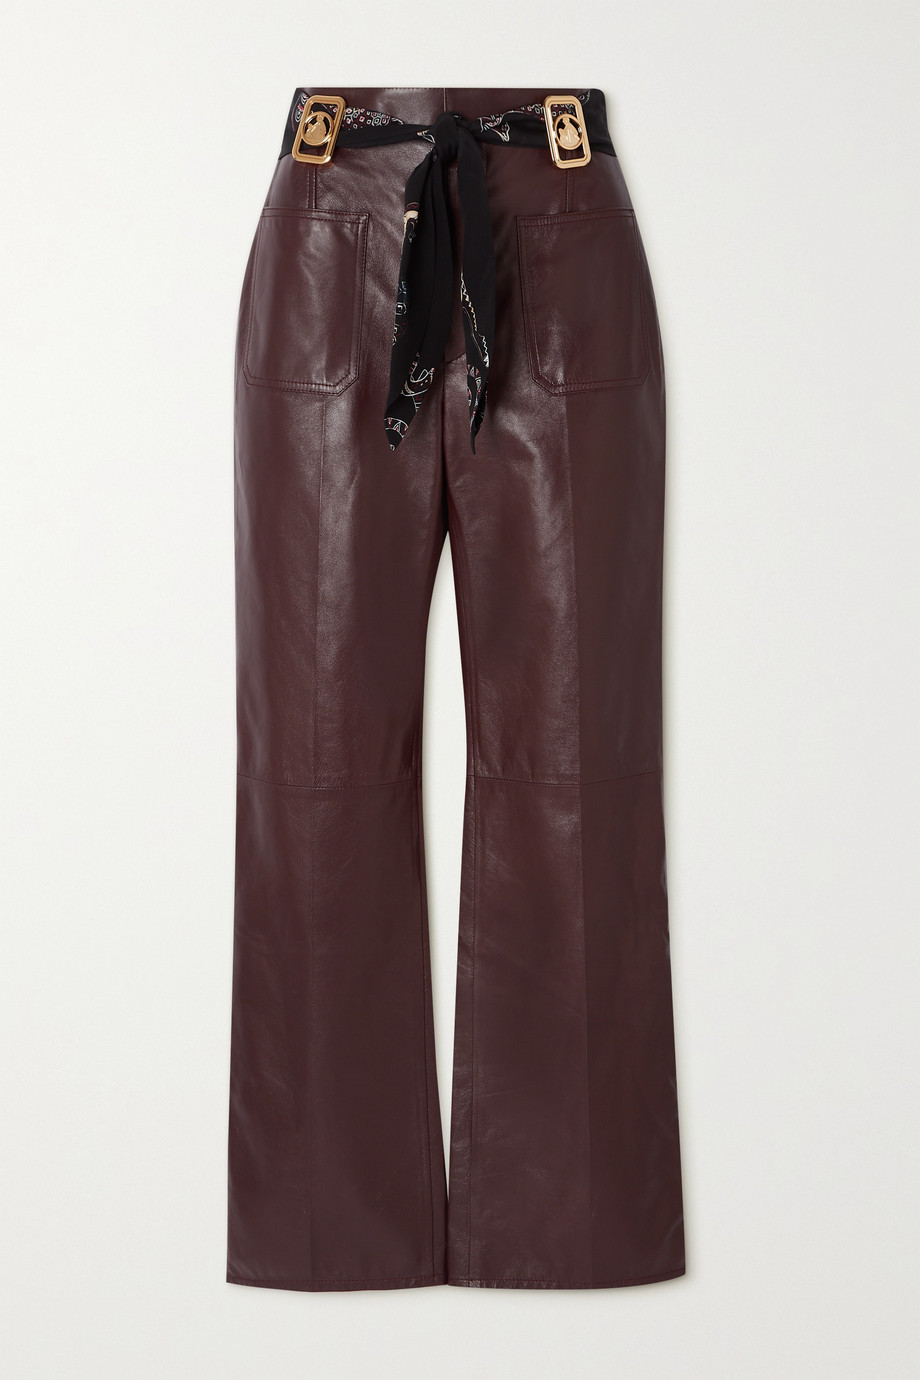 Lanvin Belted leather flared pants